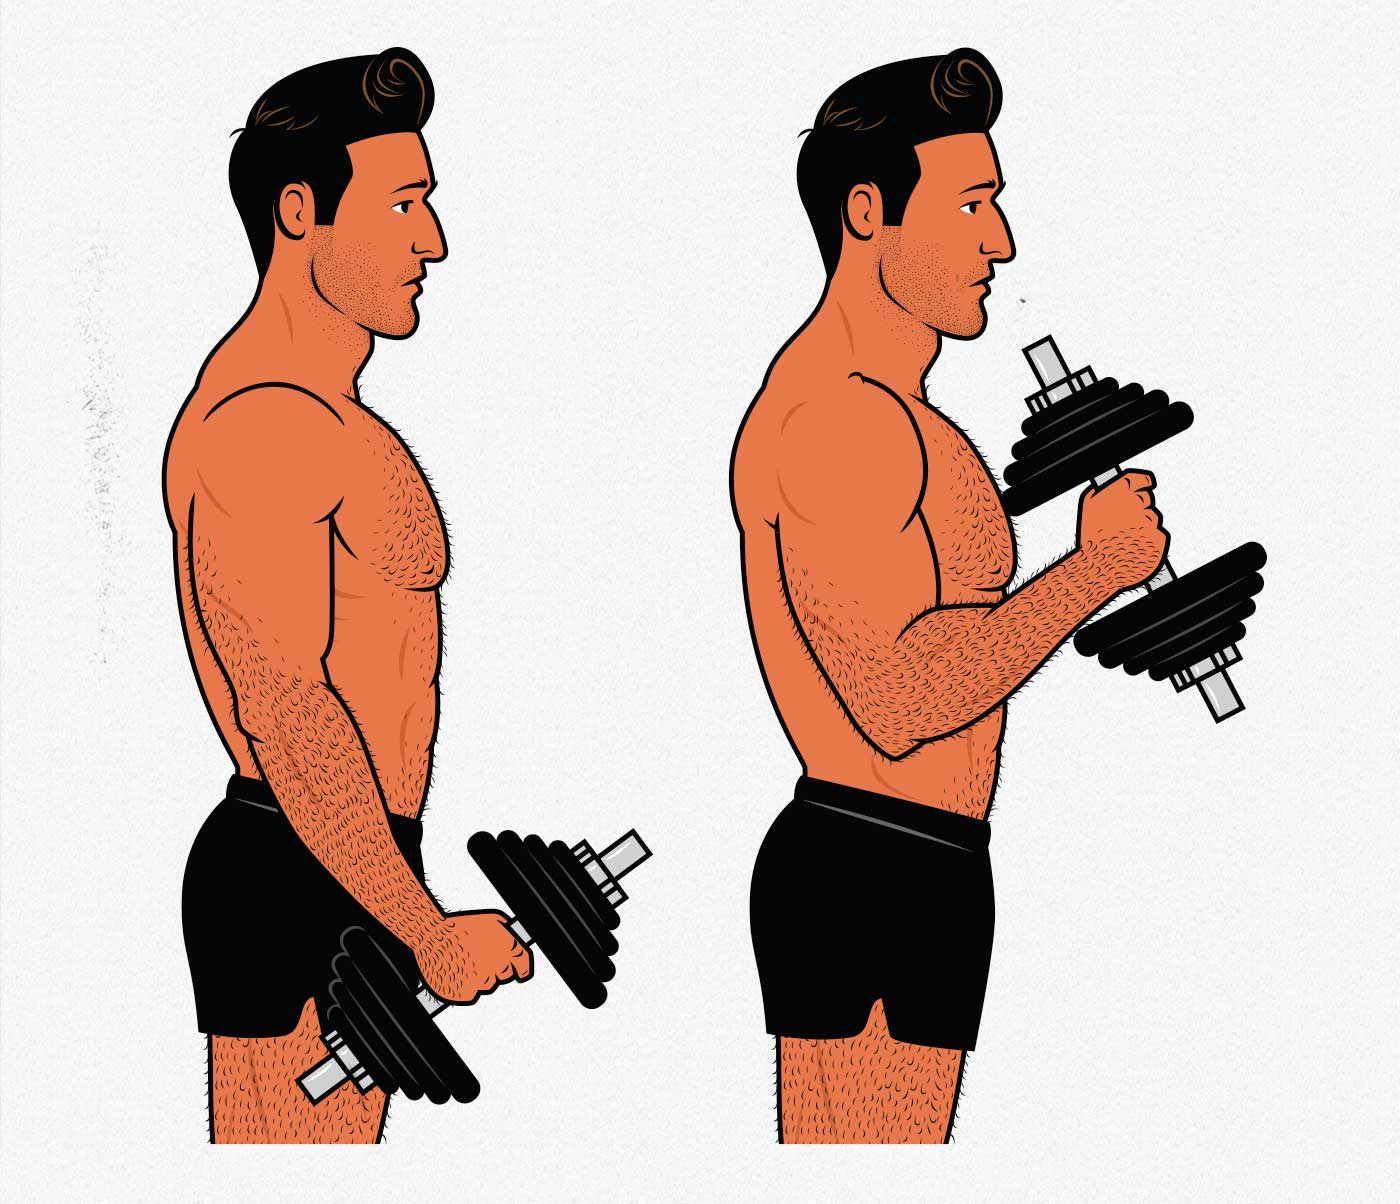 Illustration of a bodybuilder showing us how to do hammer curls to get bigger forearms.